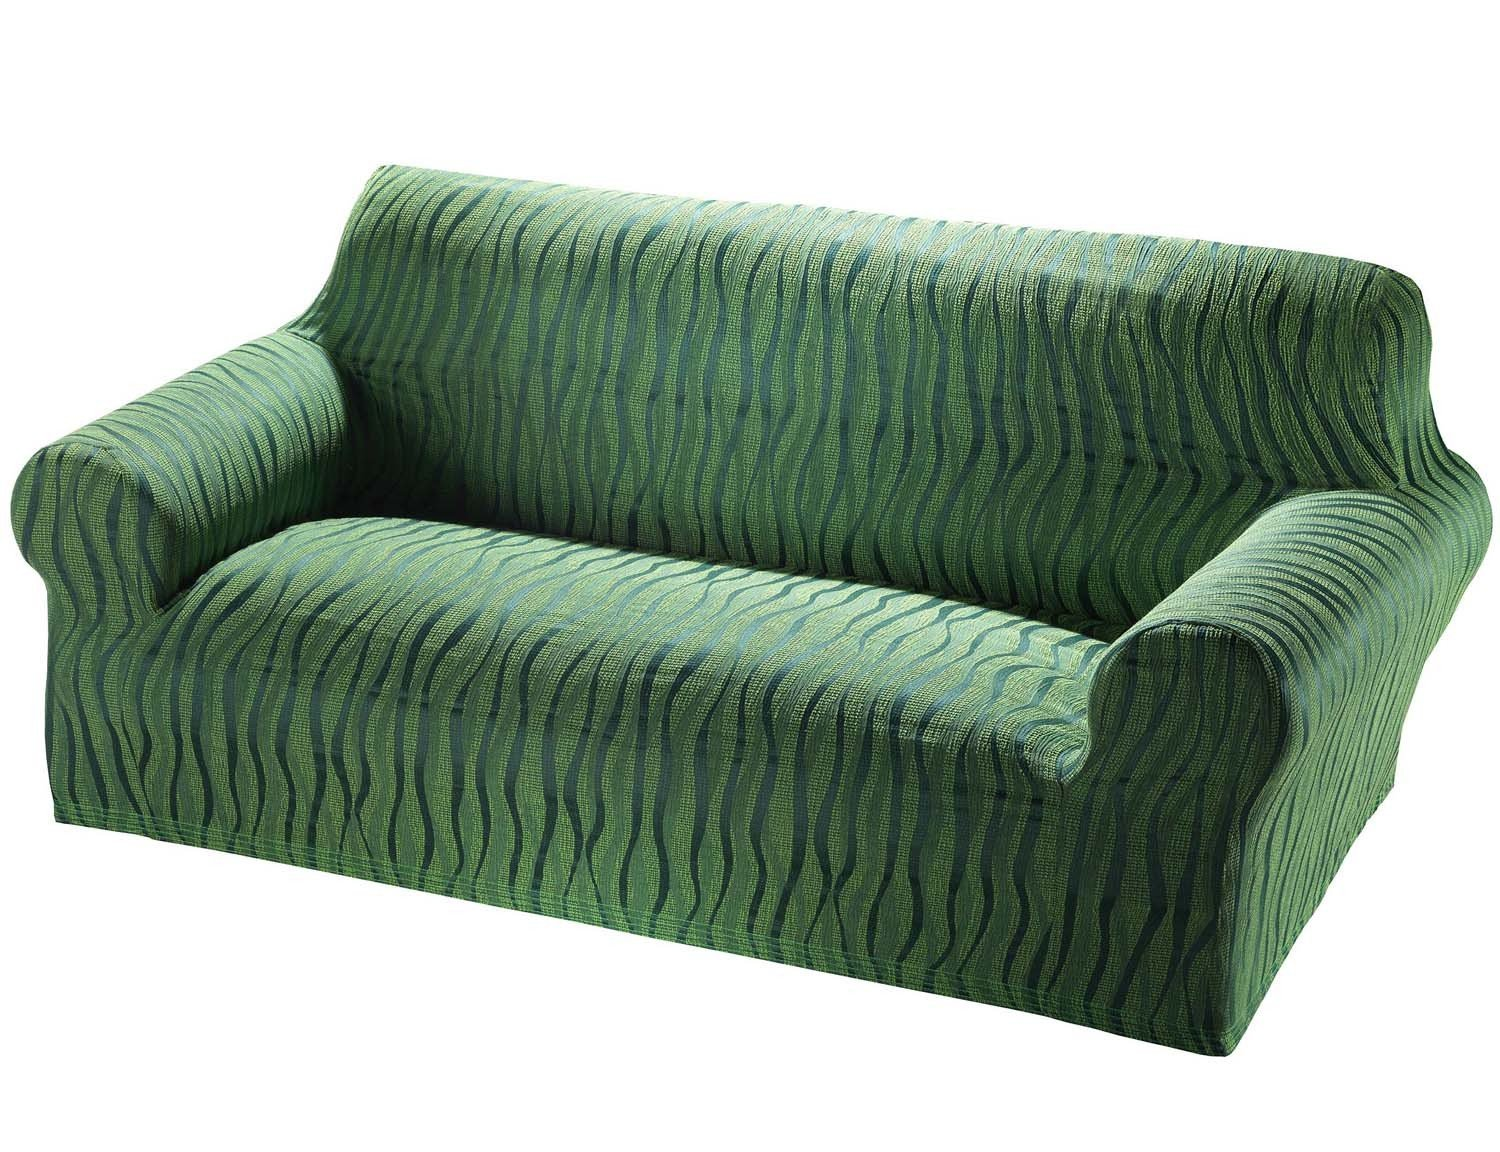 Sofa Schonbezug Hussen Couch Stunning Affordable Amazing